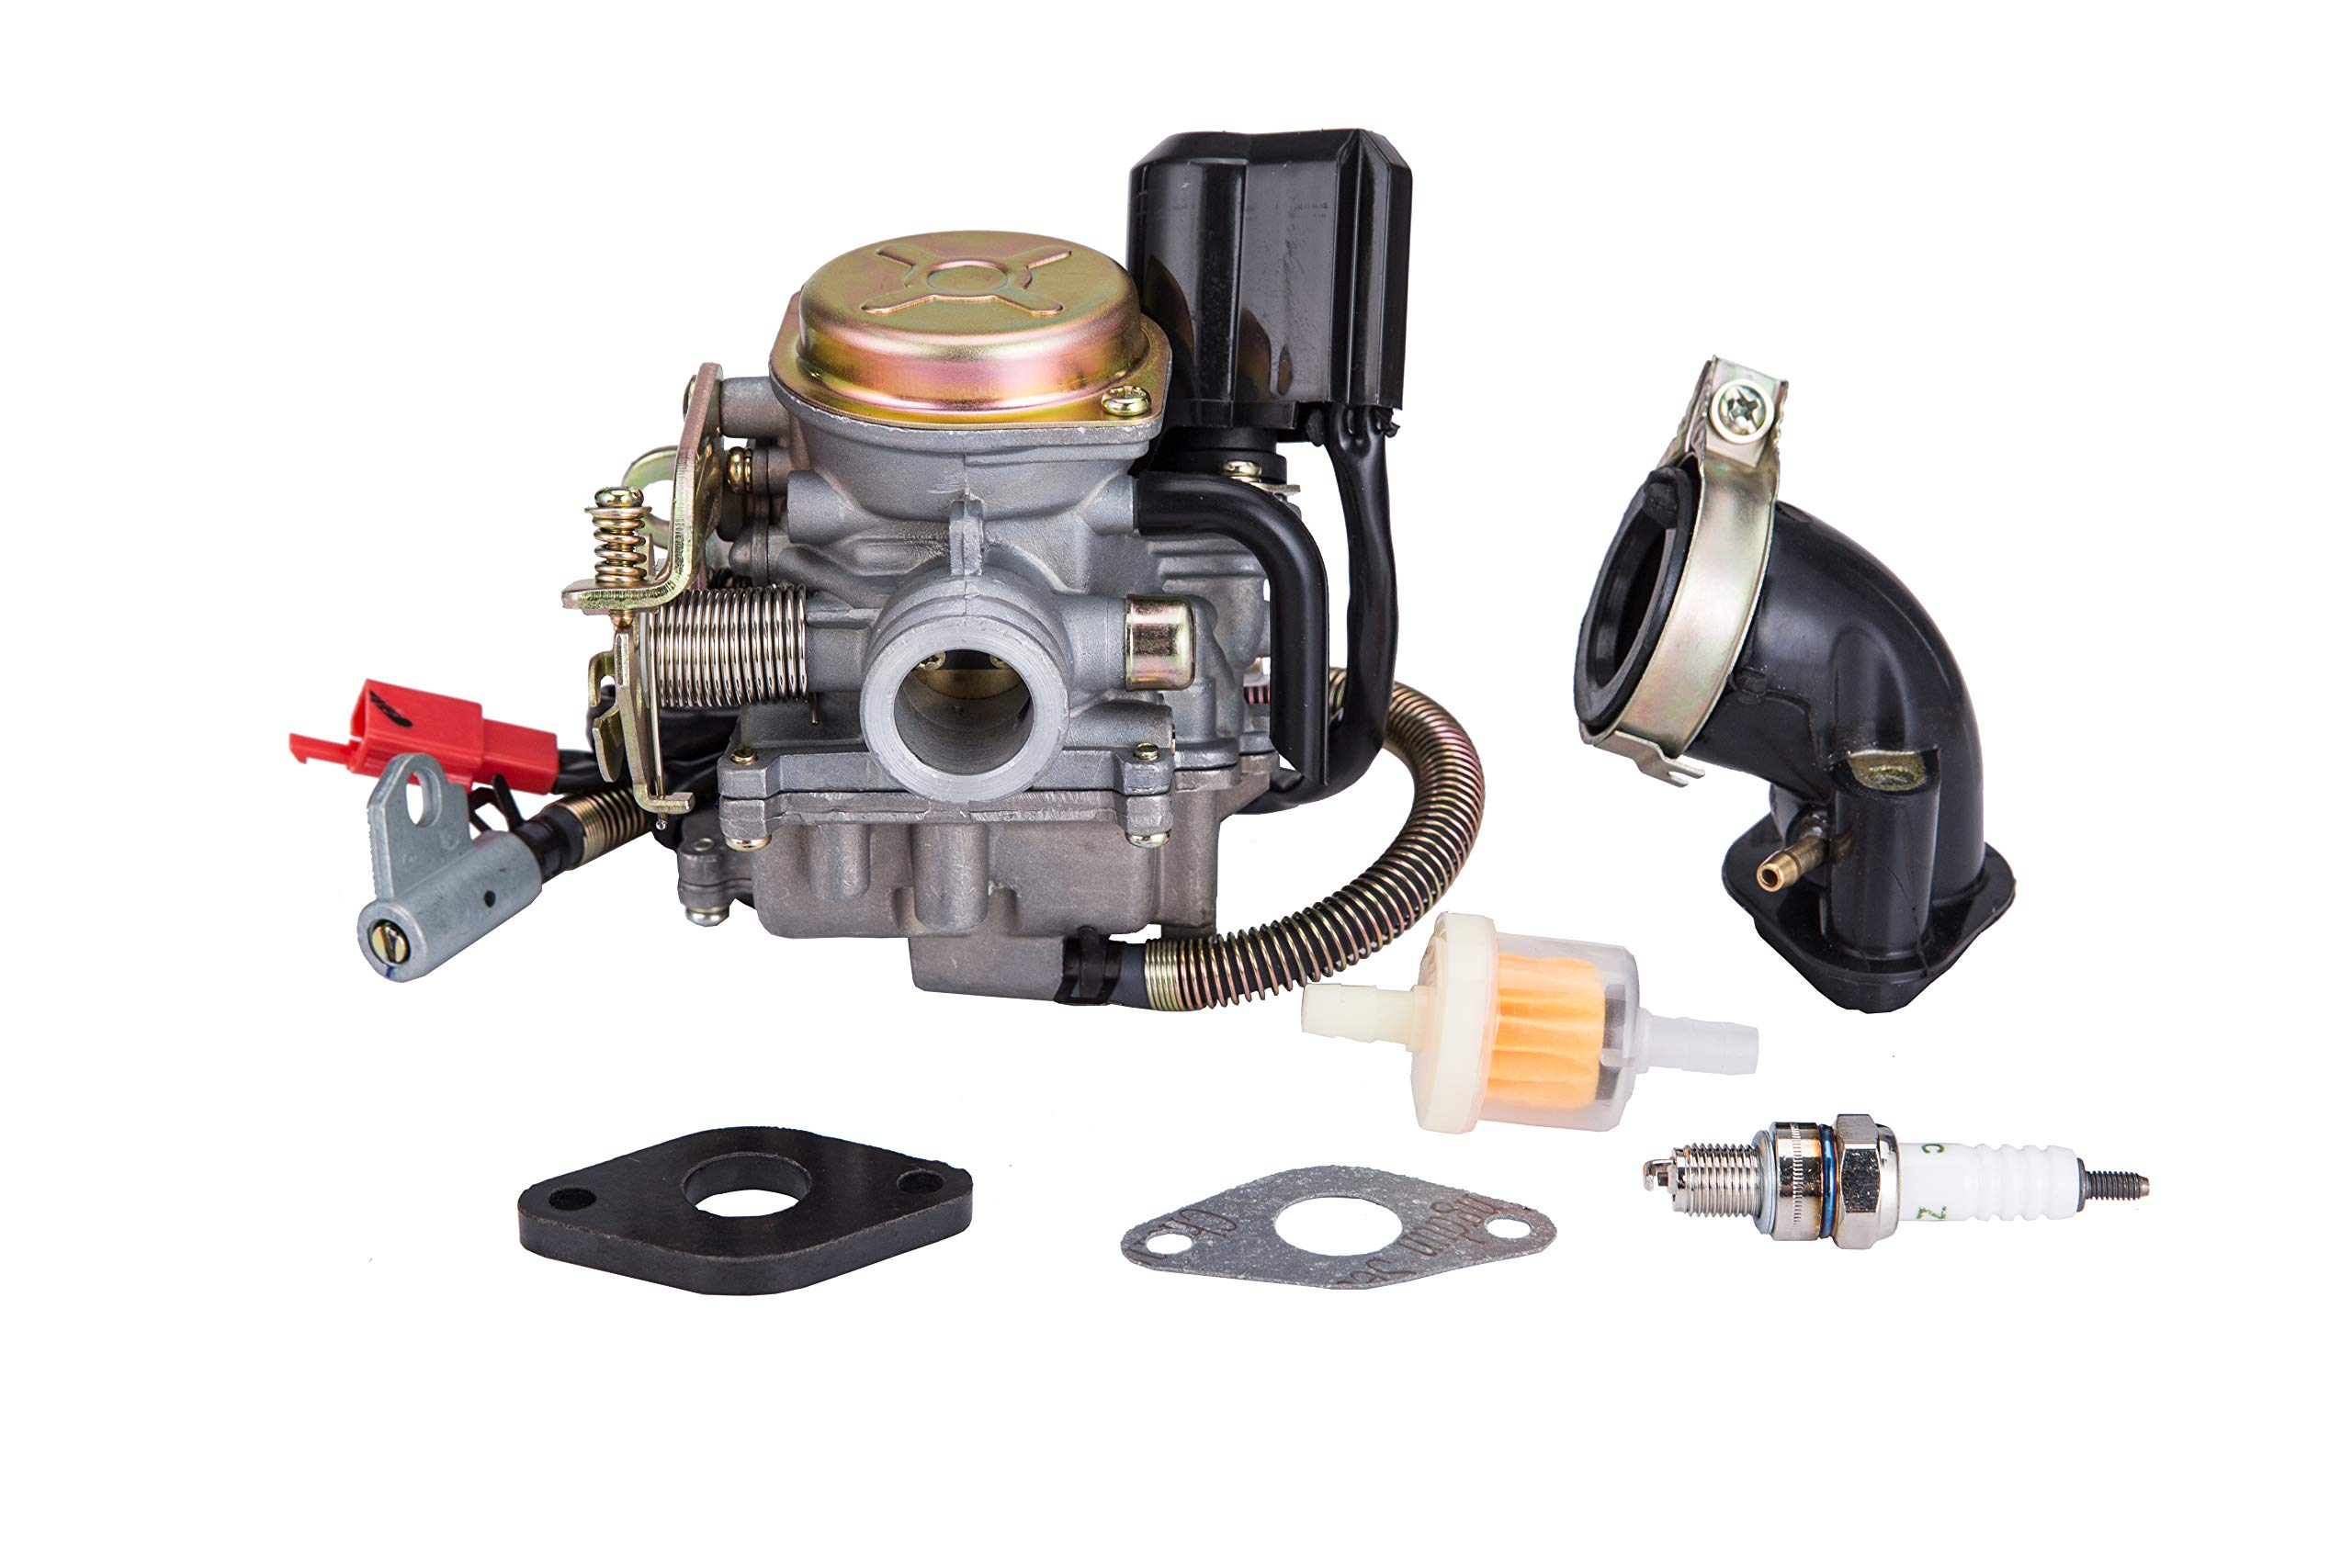 Hity Motor PD18J 18mm Carburetor for 4 Stroke GY6 49cc 50cc Chinese Scooter 139QMB Moped Engine for Taotao Kymco Scooter with Fuel Filter Spark Plug Intake Manifold and Adjusting Shims by Hity Motor